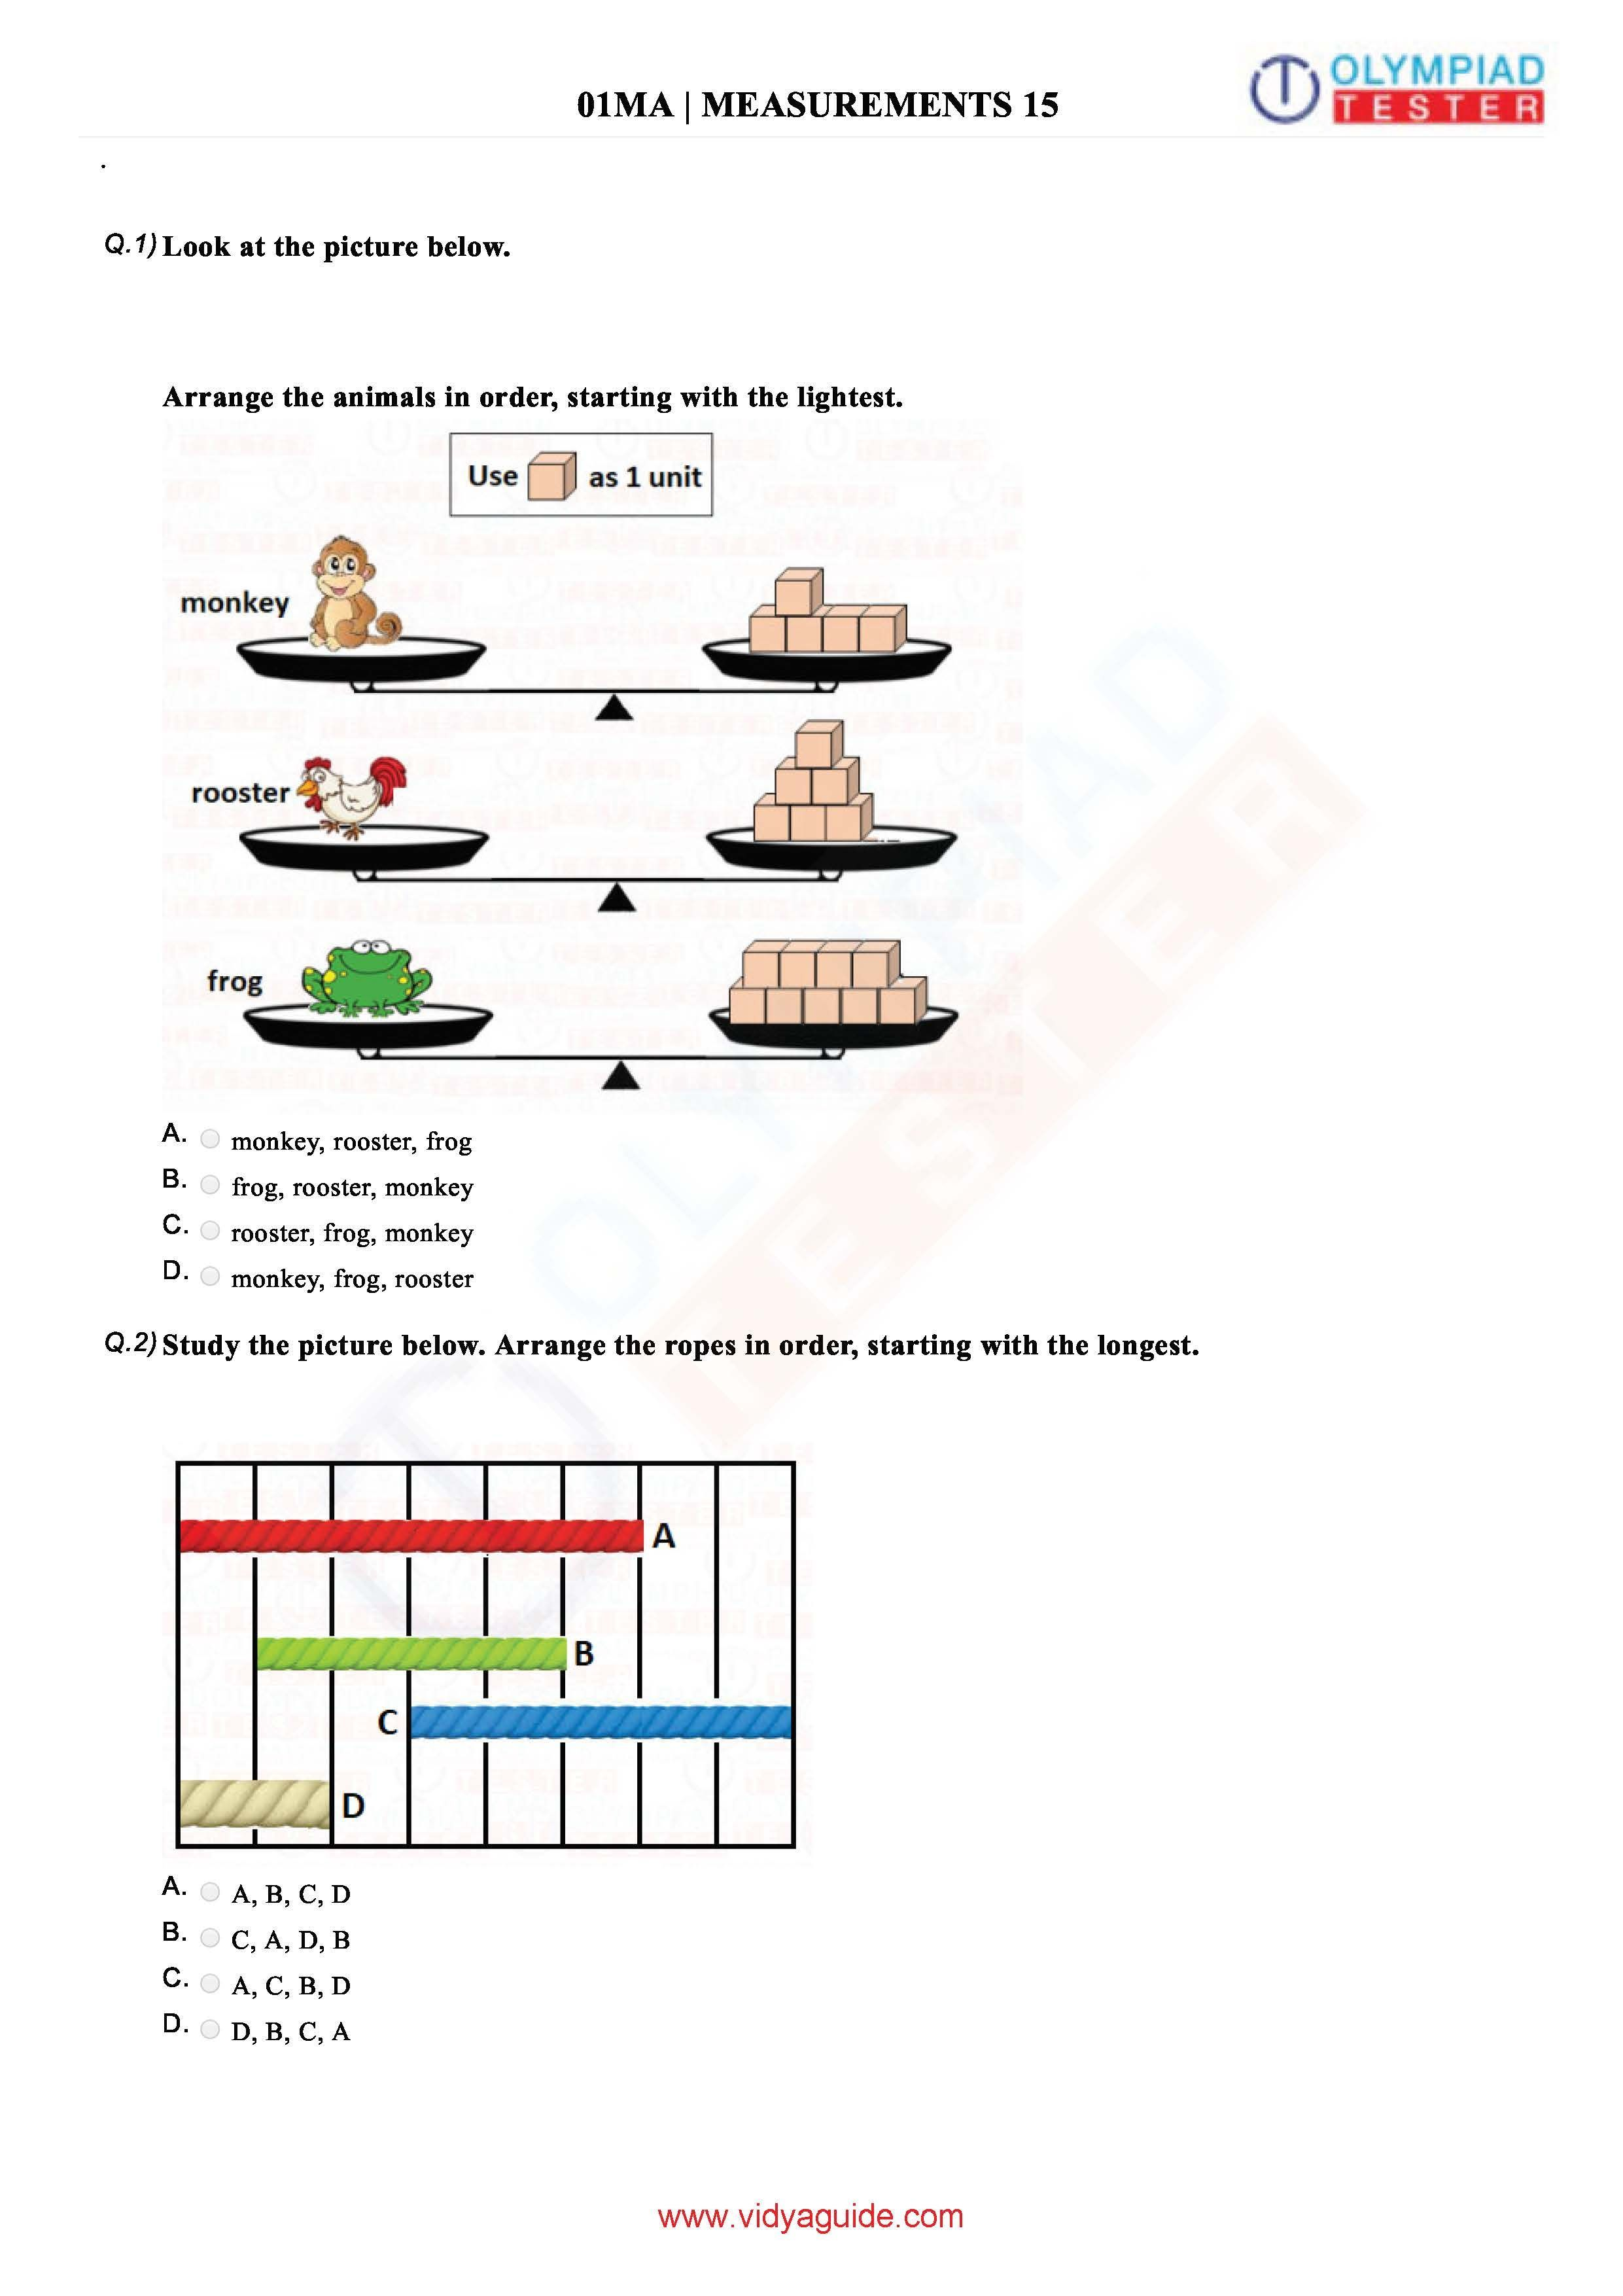 Download Grade 1 Maths Olympiad Printable Worksheets And Sample Papers From Vidyaguide Math Olympiad Class 1 Maths Math